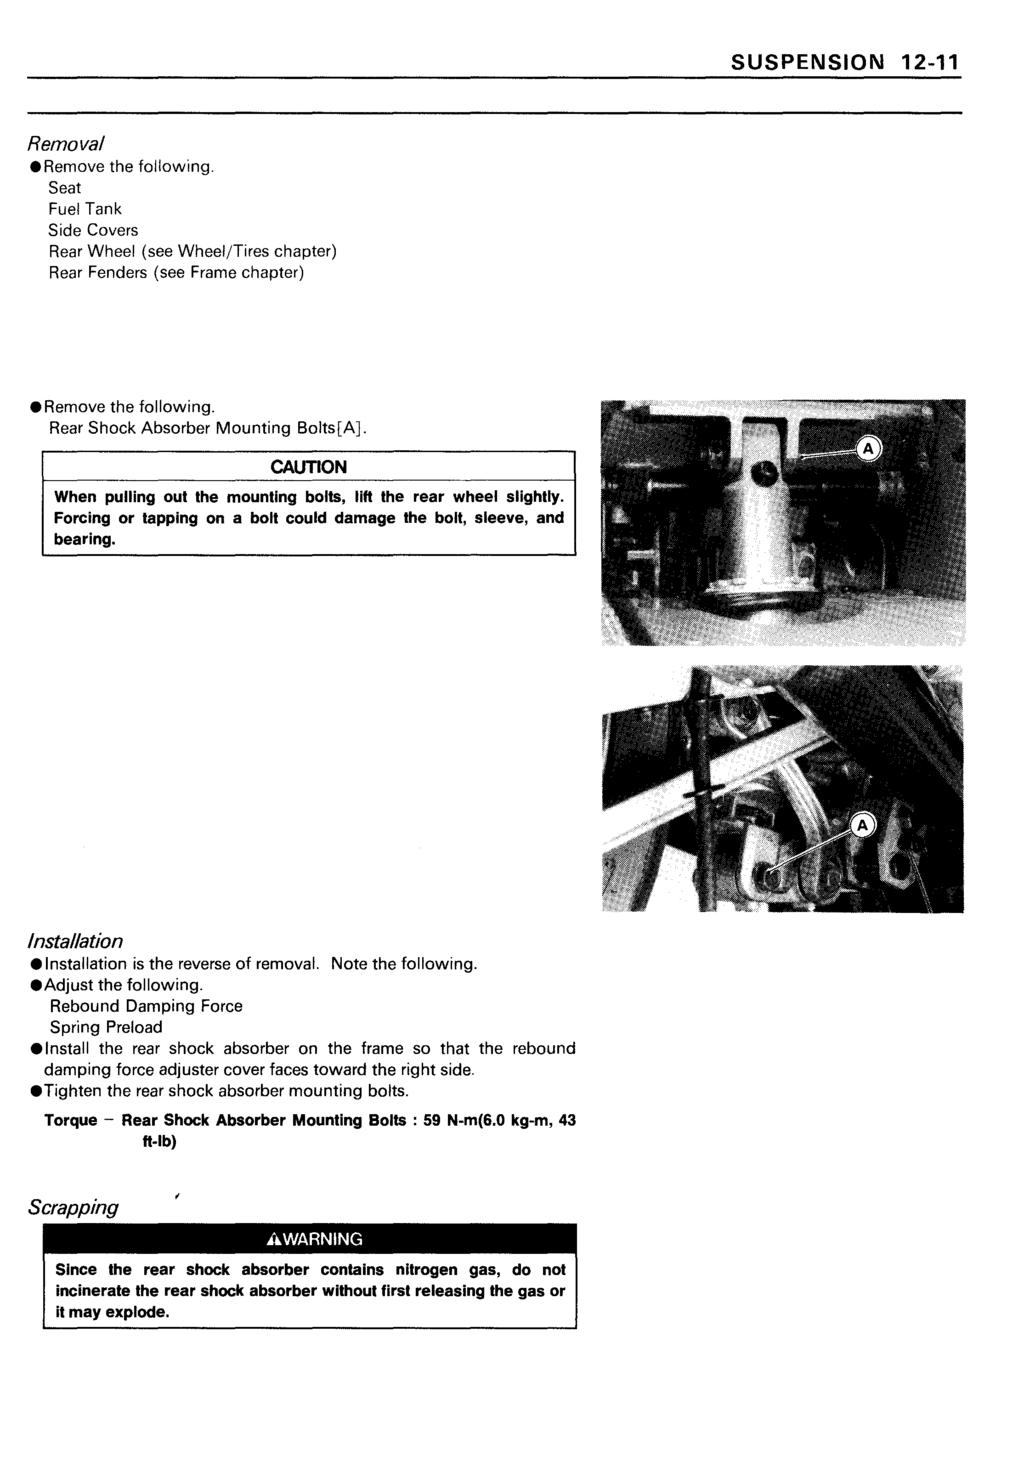 Ninja Zx 11 Zz R1100 Kawasaki Motorcycle Service Manual Pdf Zx11 Wiring Diagram Suspension 12 Removalremove The Following Seat Fuel Tank Side Covers Rear